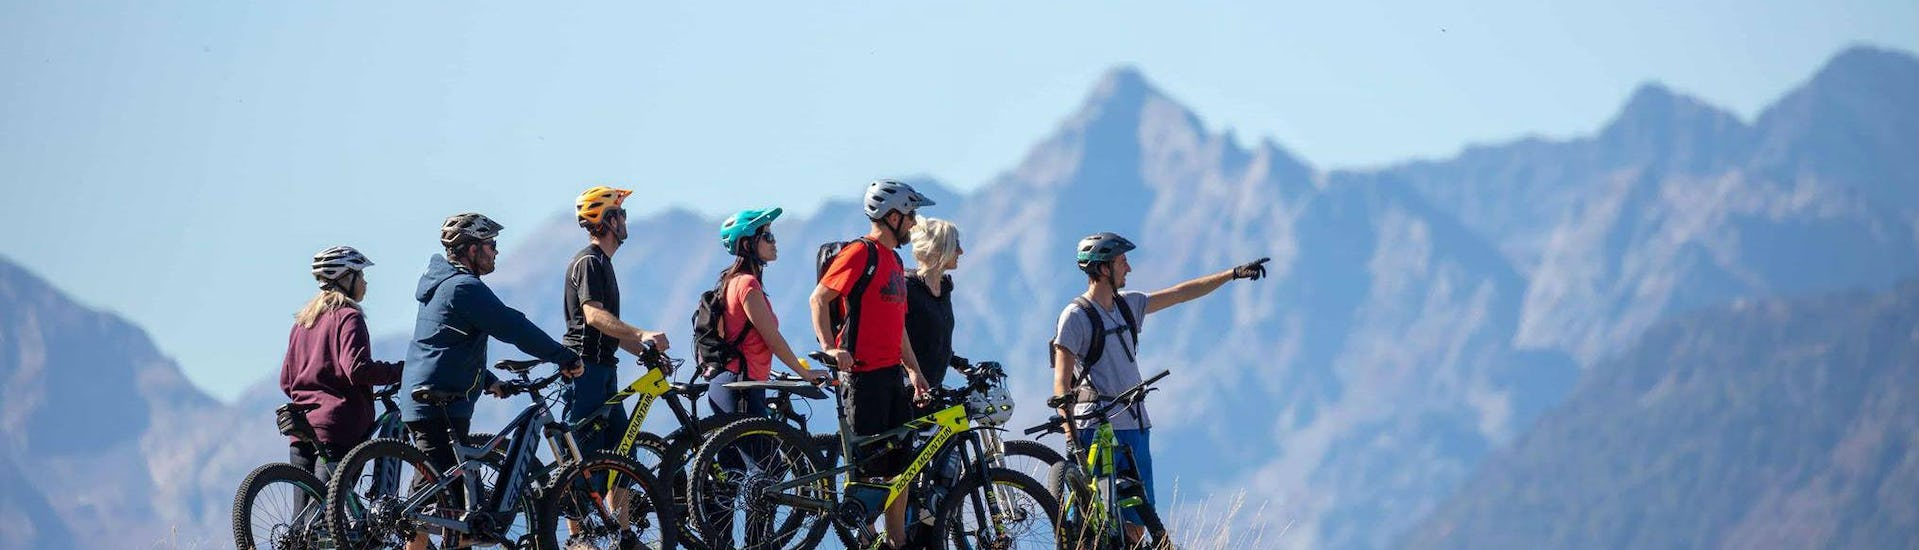 Private Mountain Bike Guide in 4 Vallées - All Levels